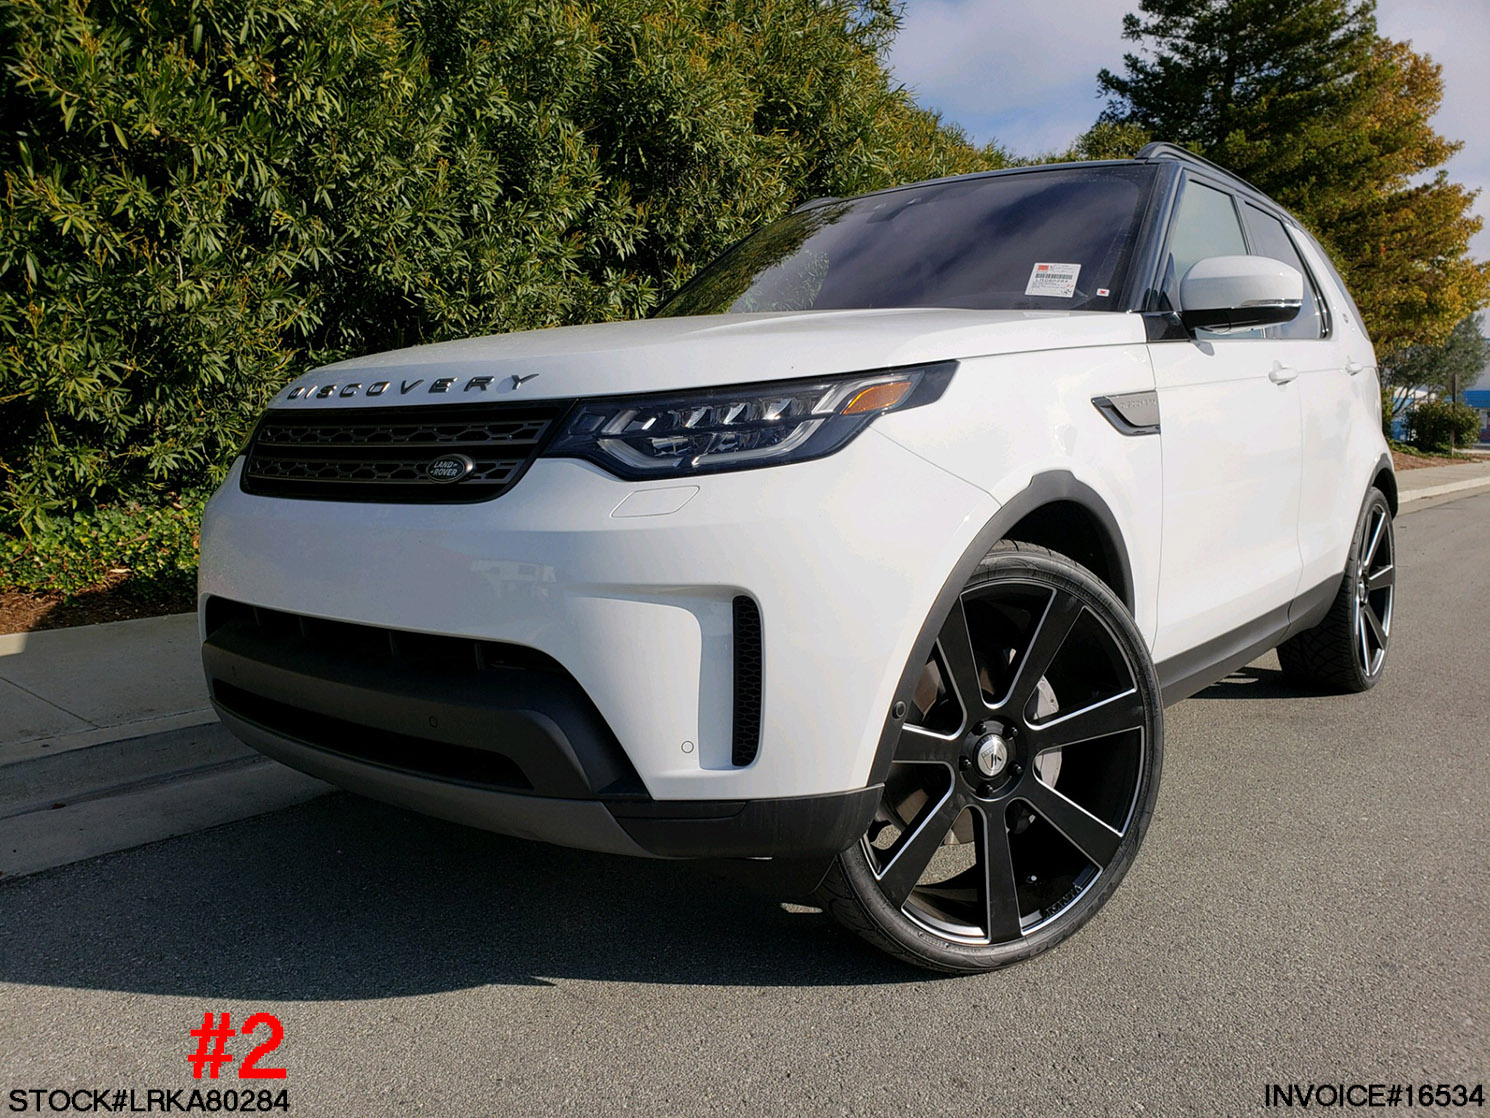 LRKA080284- 2019 LAND ROVER DISCOVERY HSE